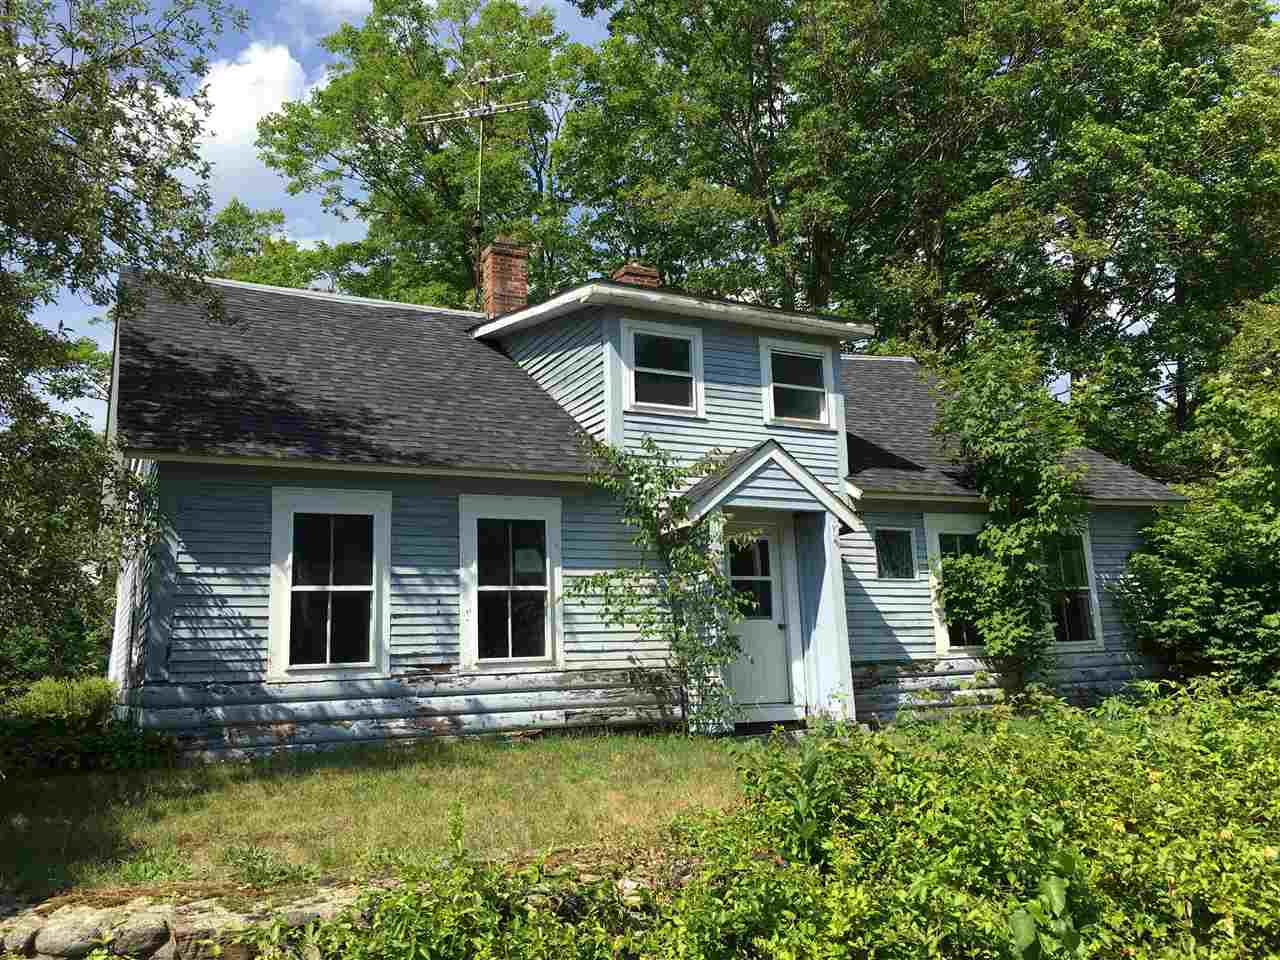 Residential Homes and Real Estate for Sale in Bradford, NH by price ...